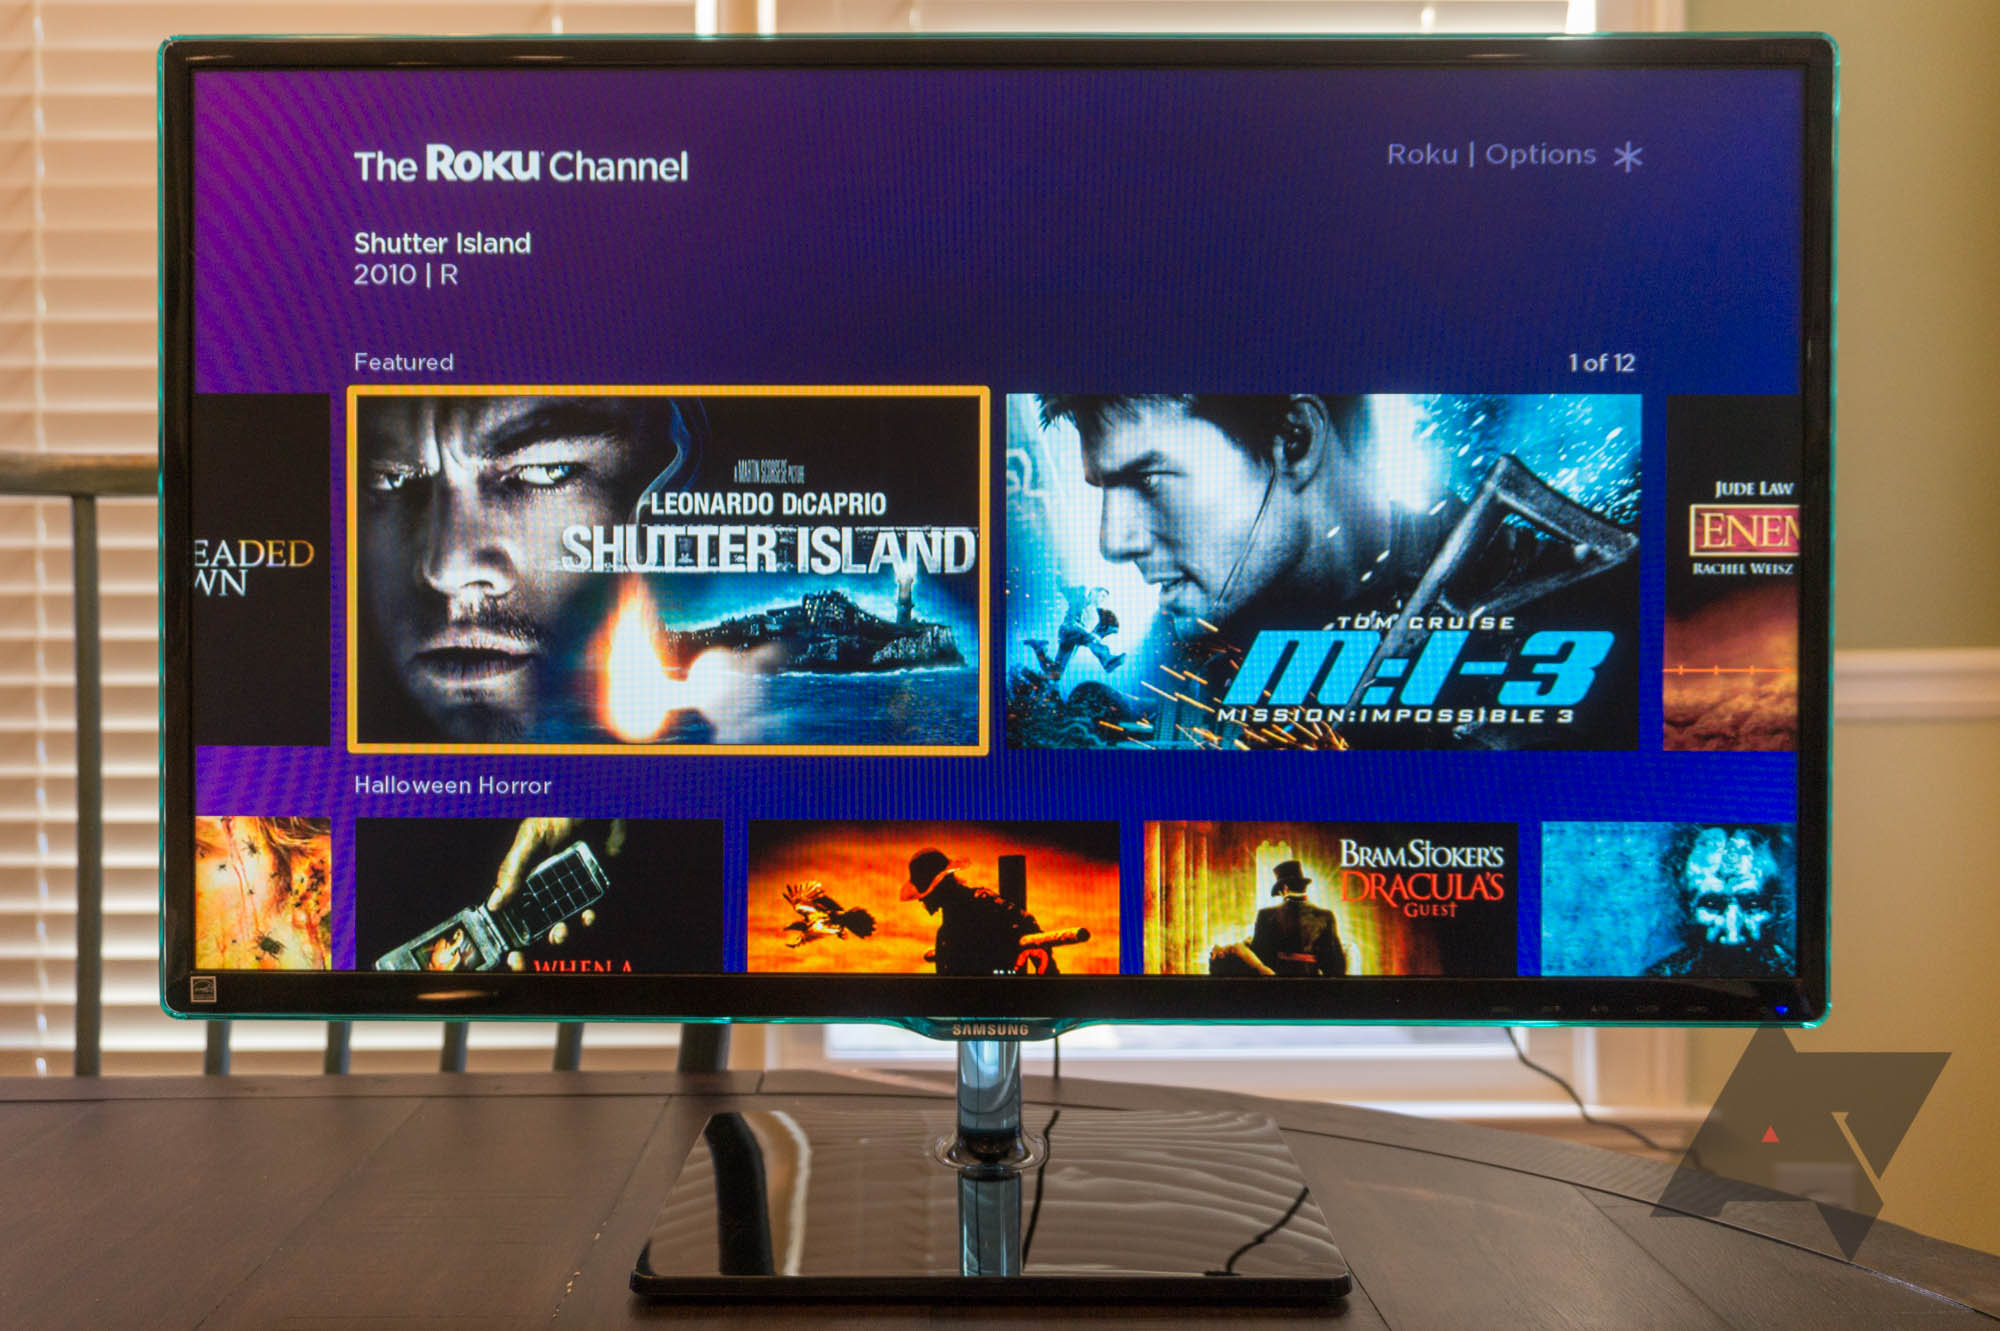 Roku Streaming Stick & Stick+ review: A great pair of